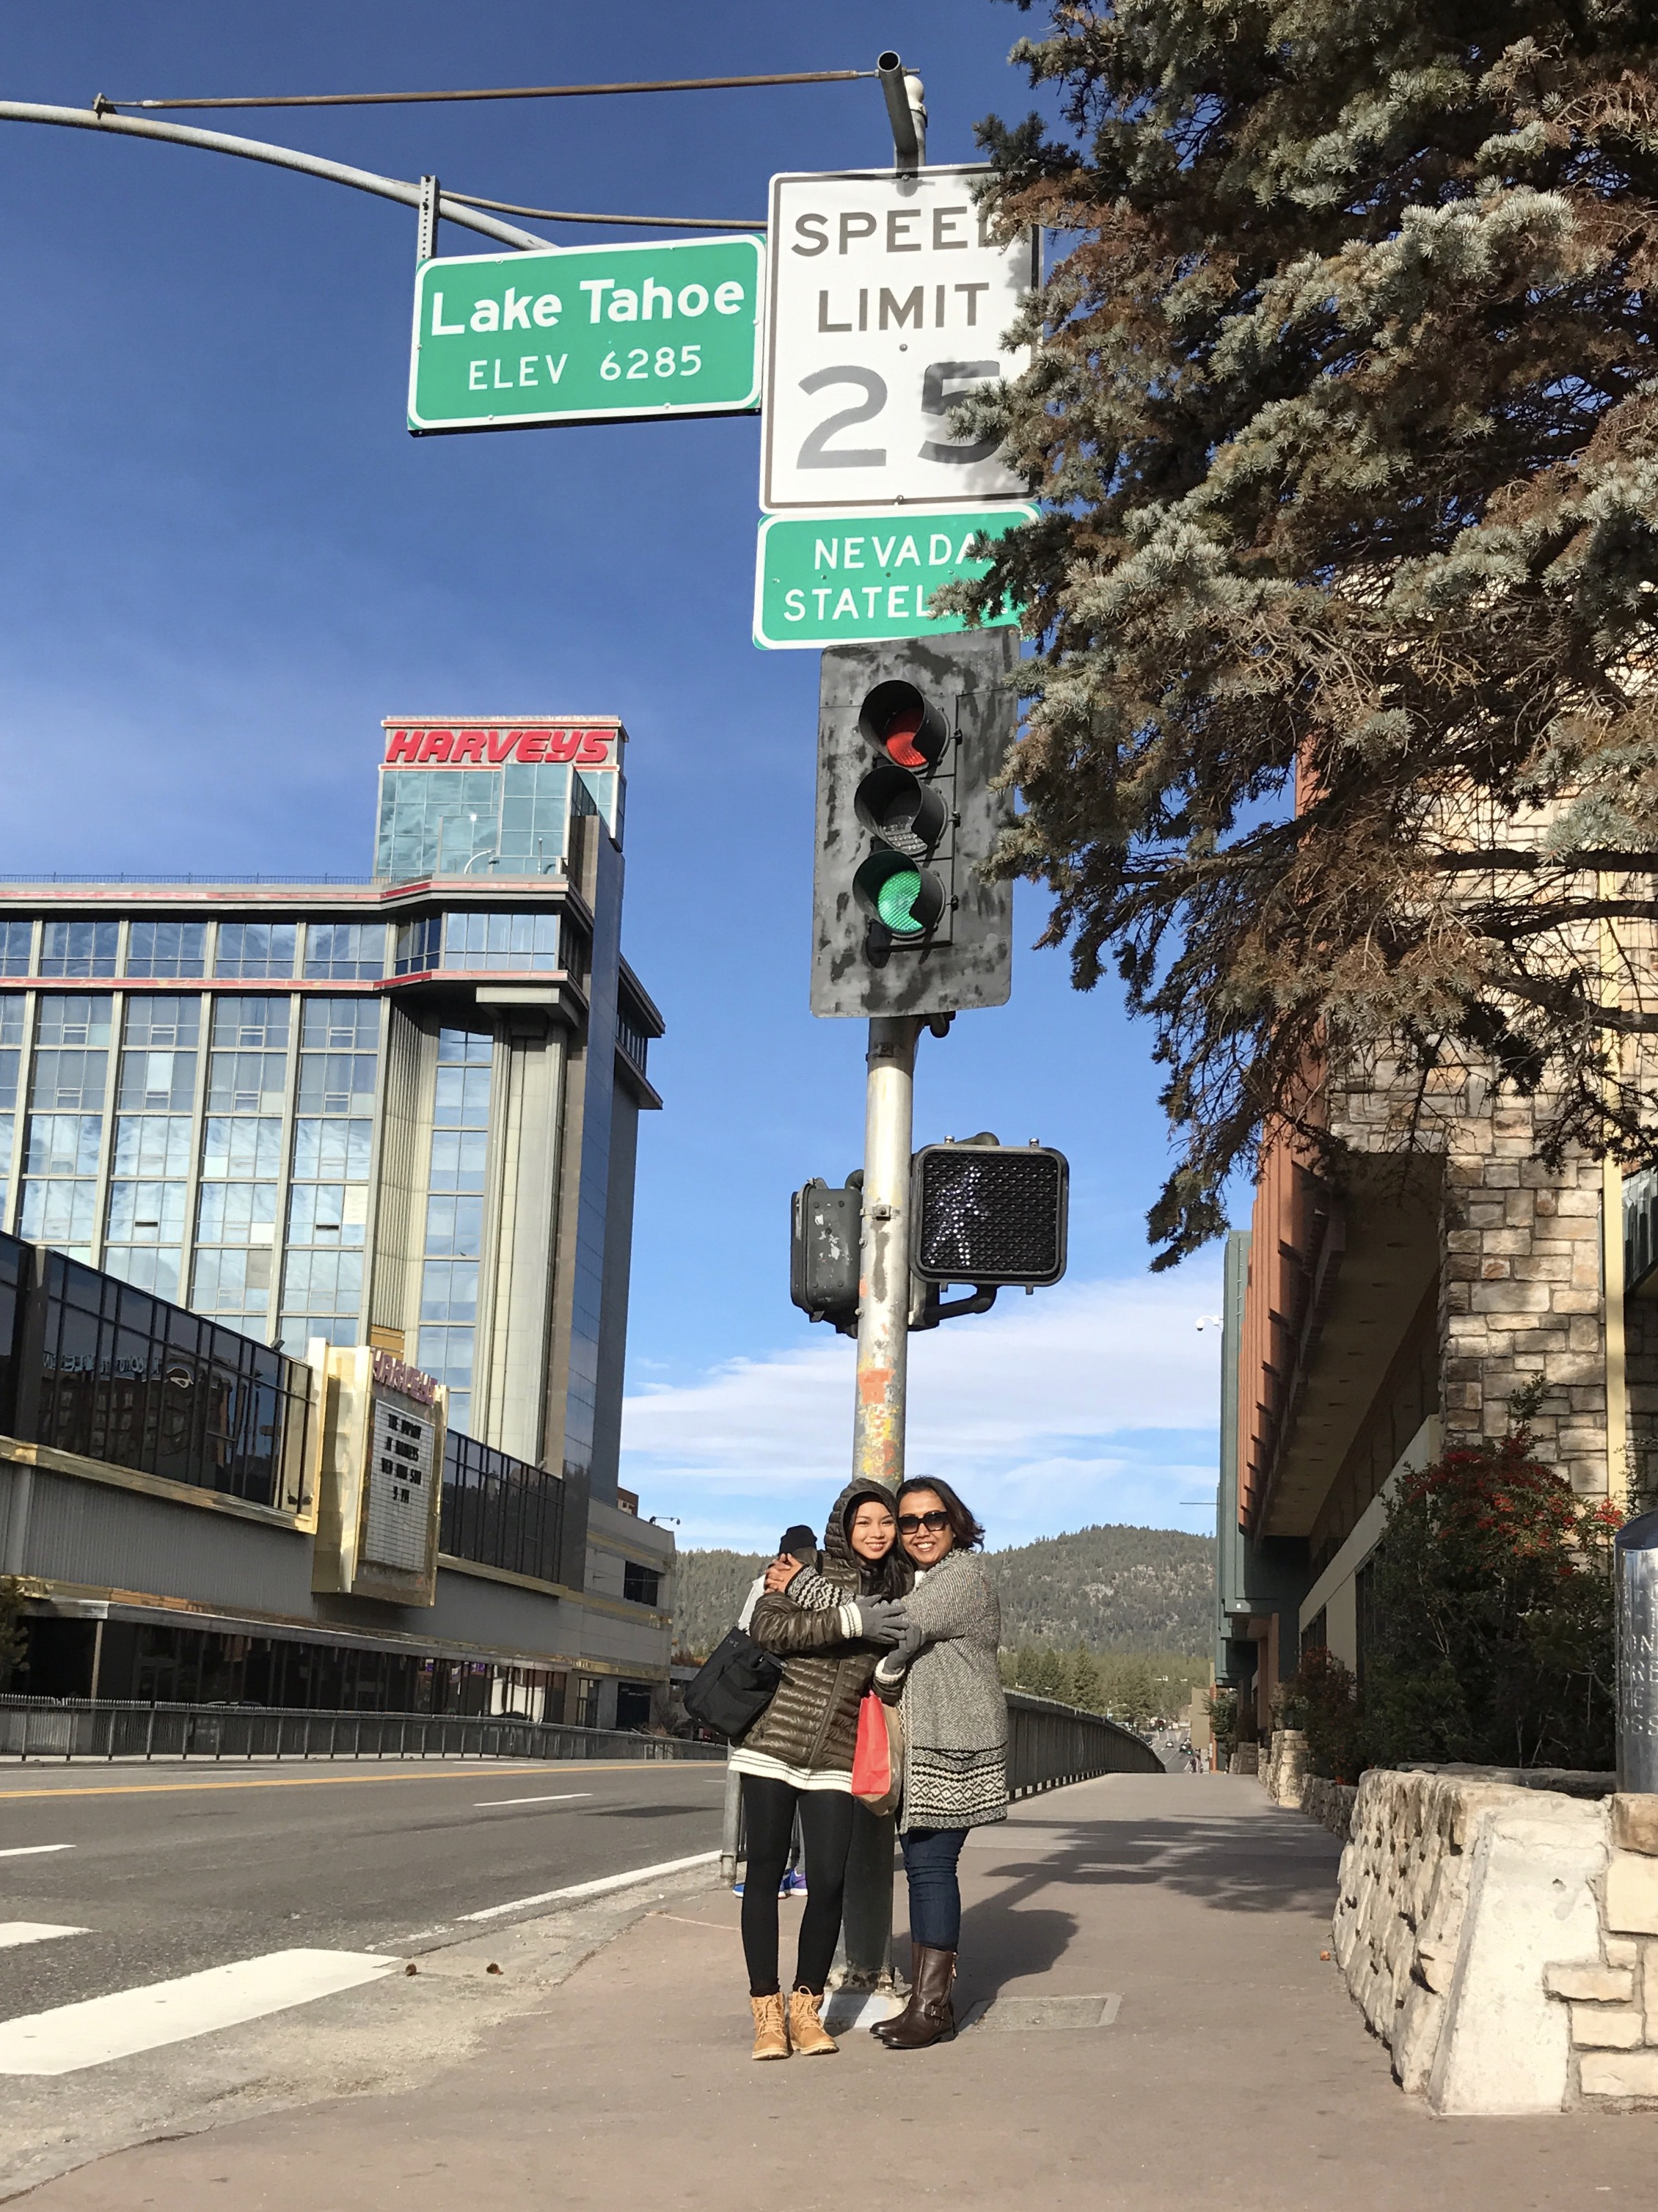 With my half-sister below the Nevada Stateline sign